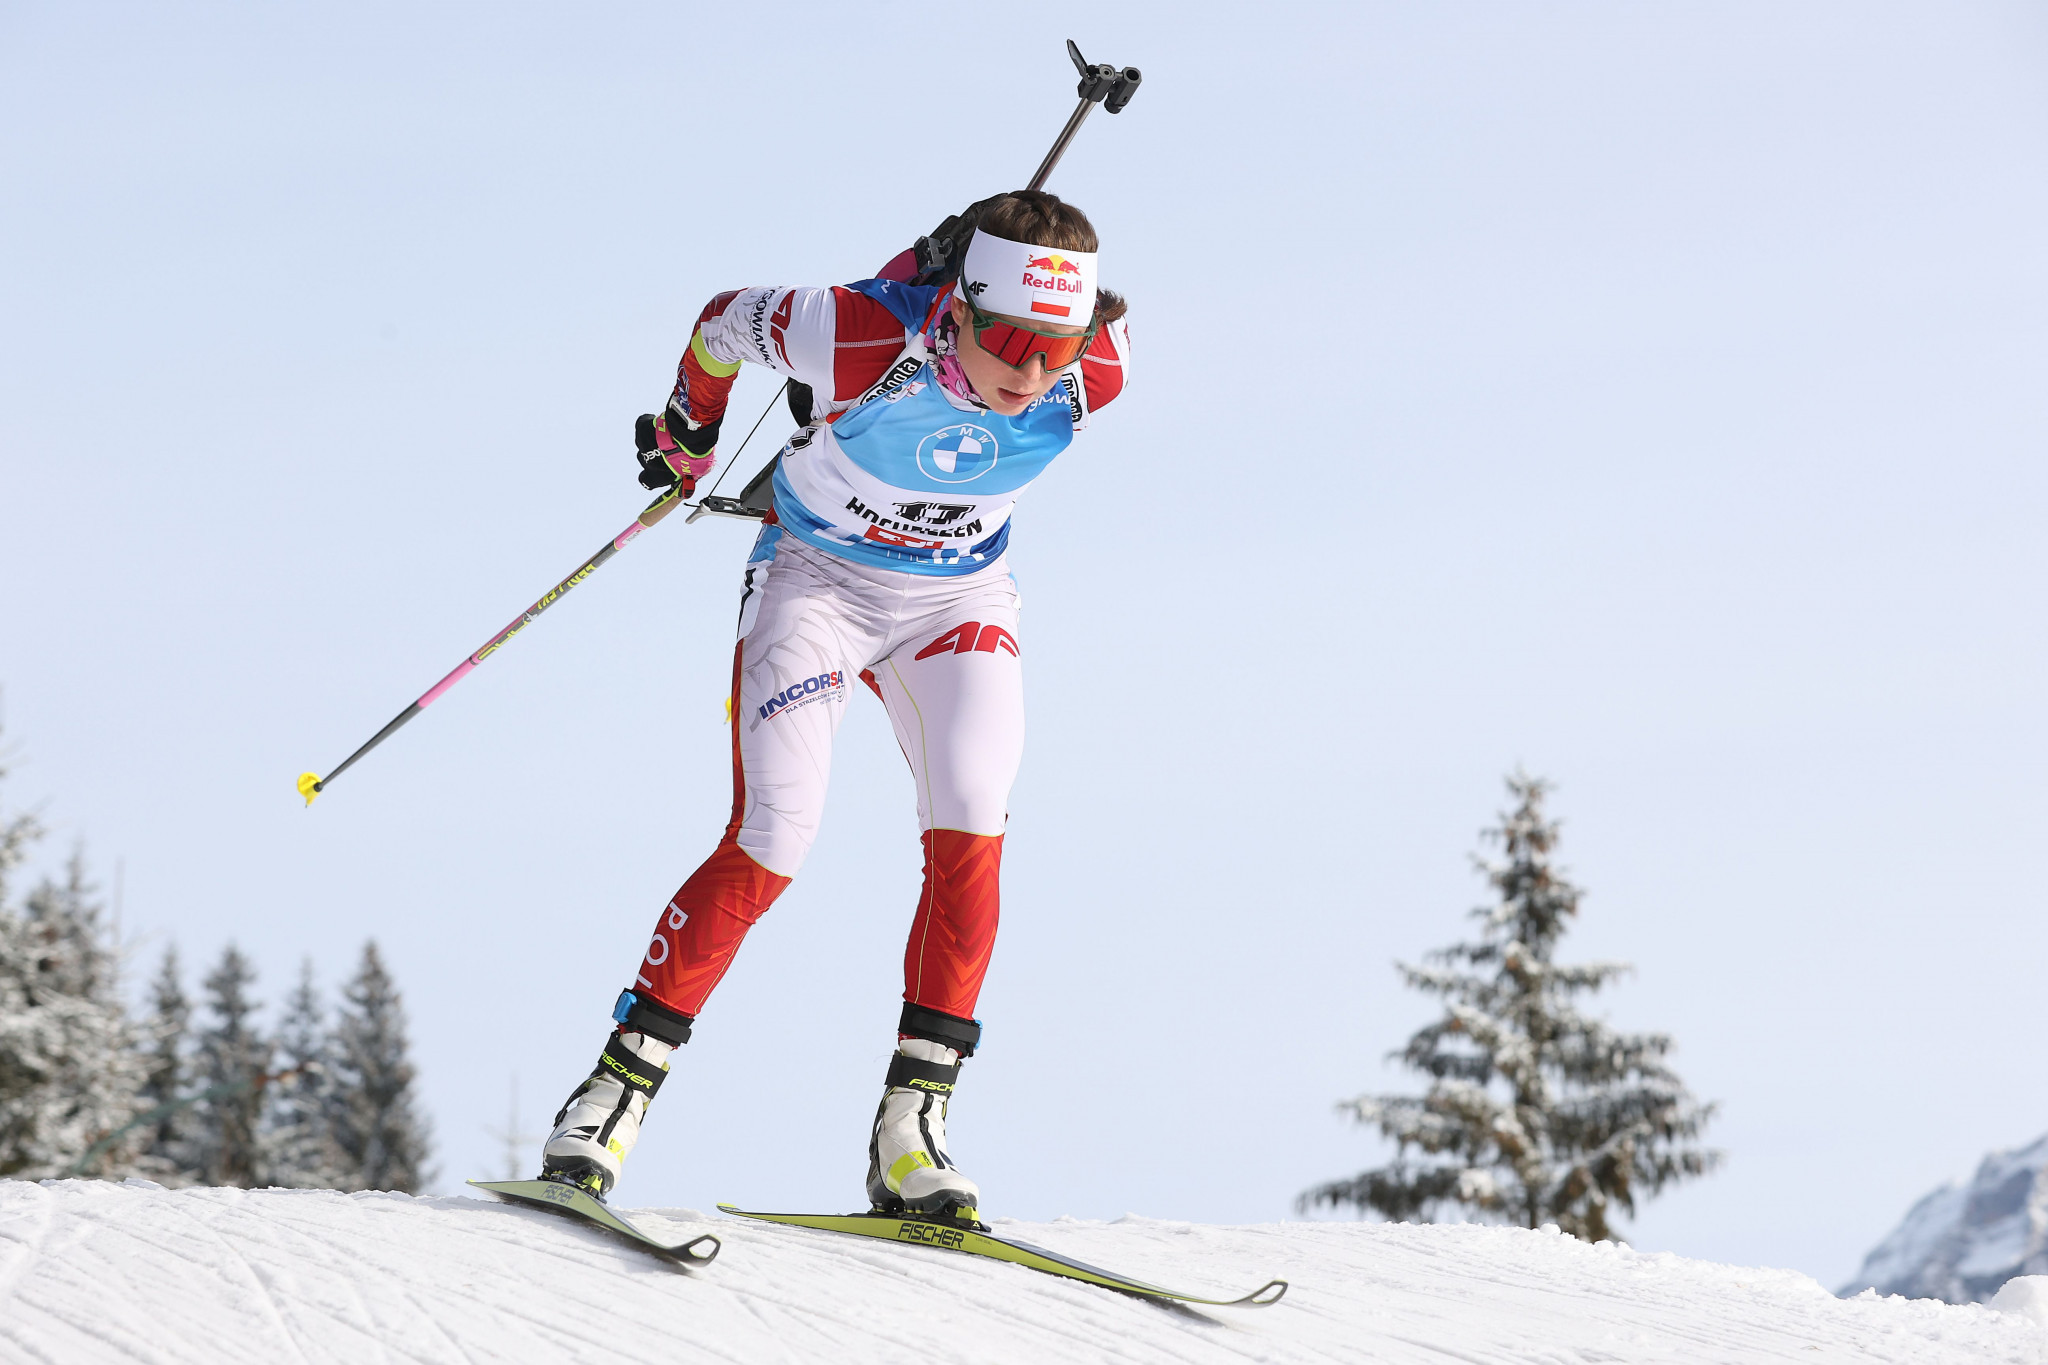 Zuk earns home pursuit victory at IBU Open European Championships